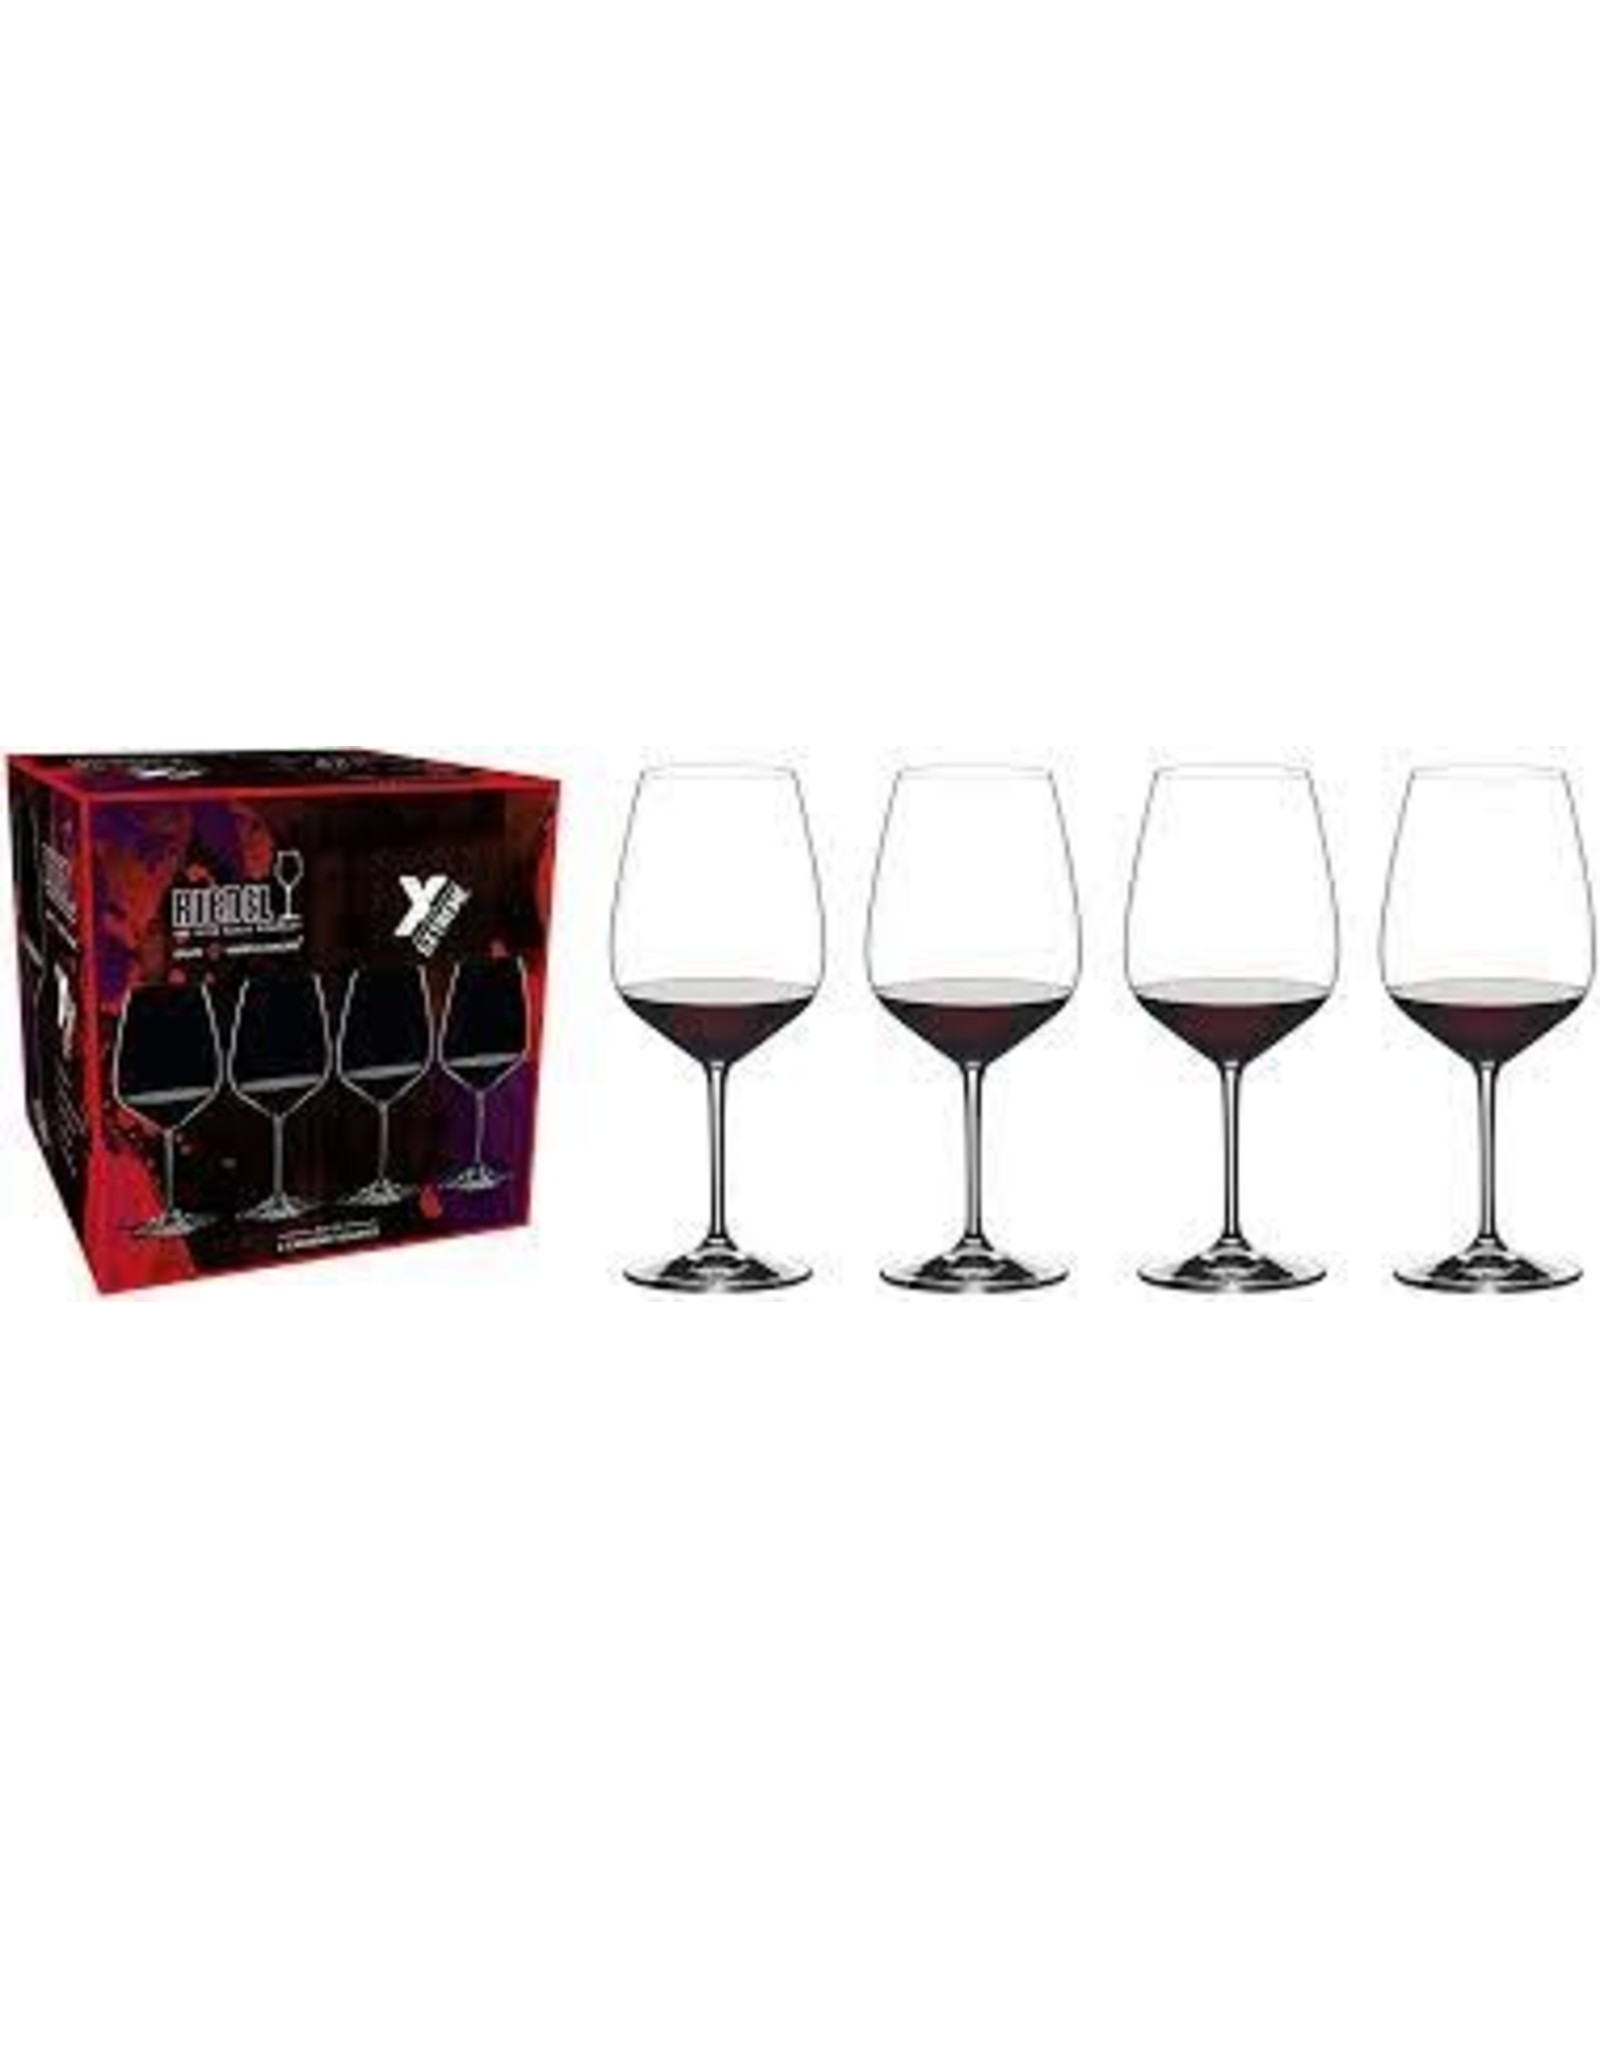 Riedel RIEDEL Extreme Cab Pay 3 Get 4